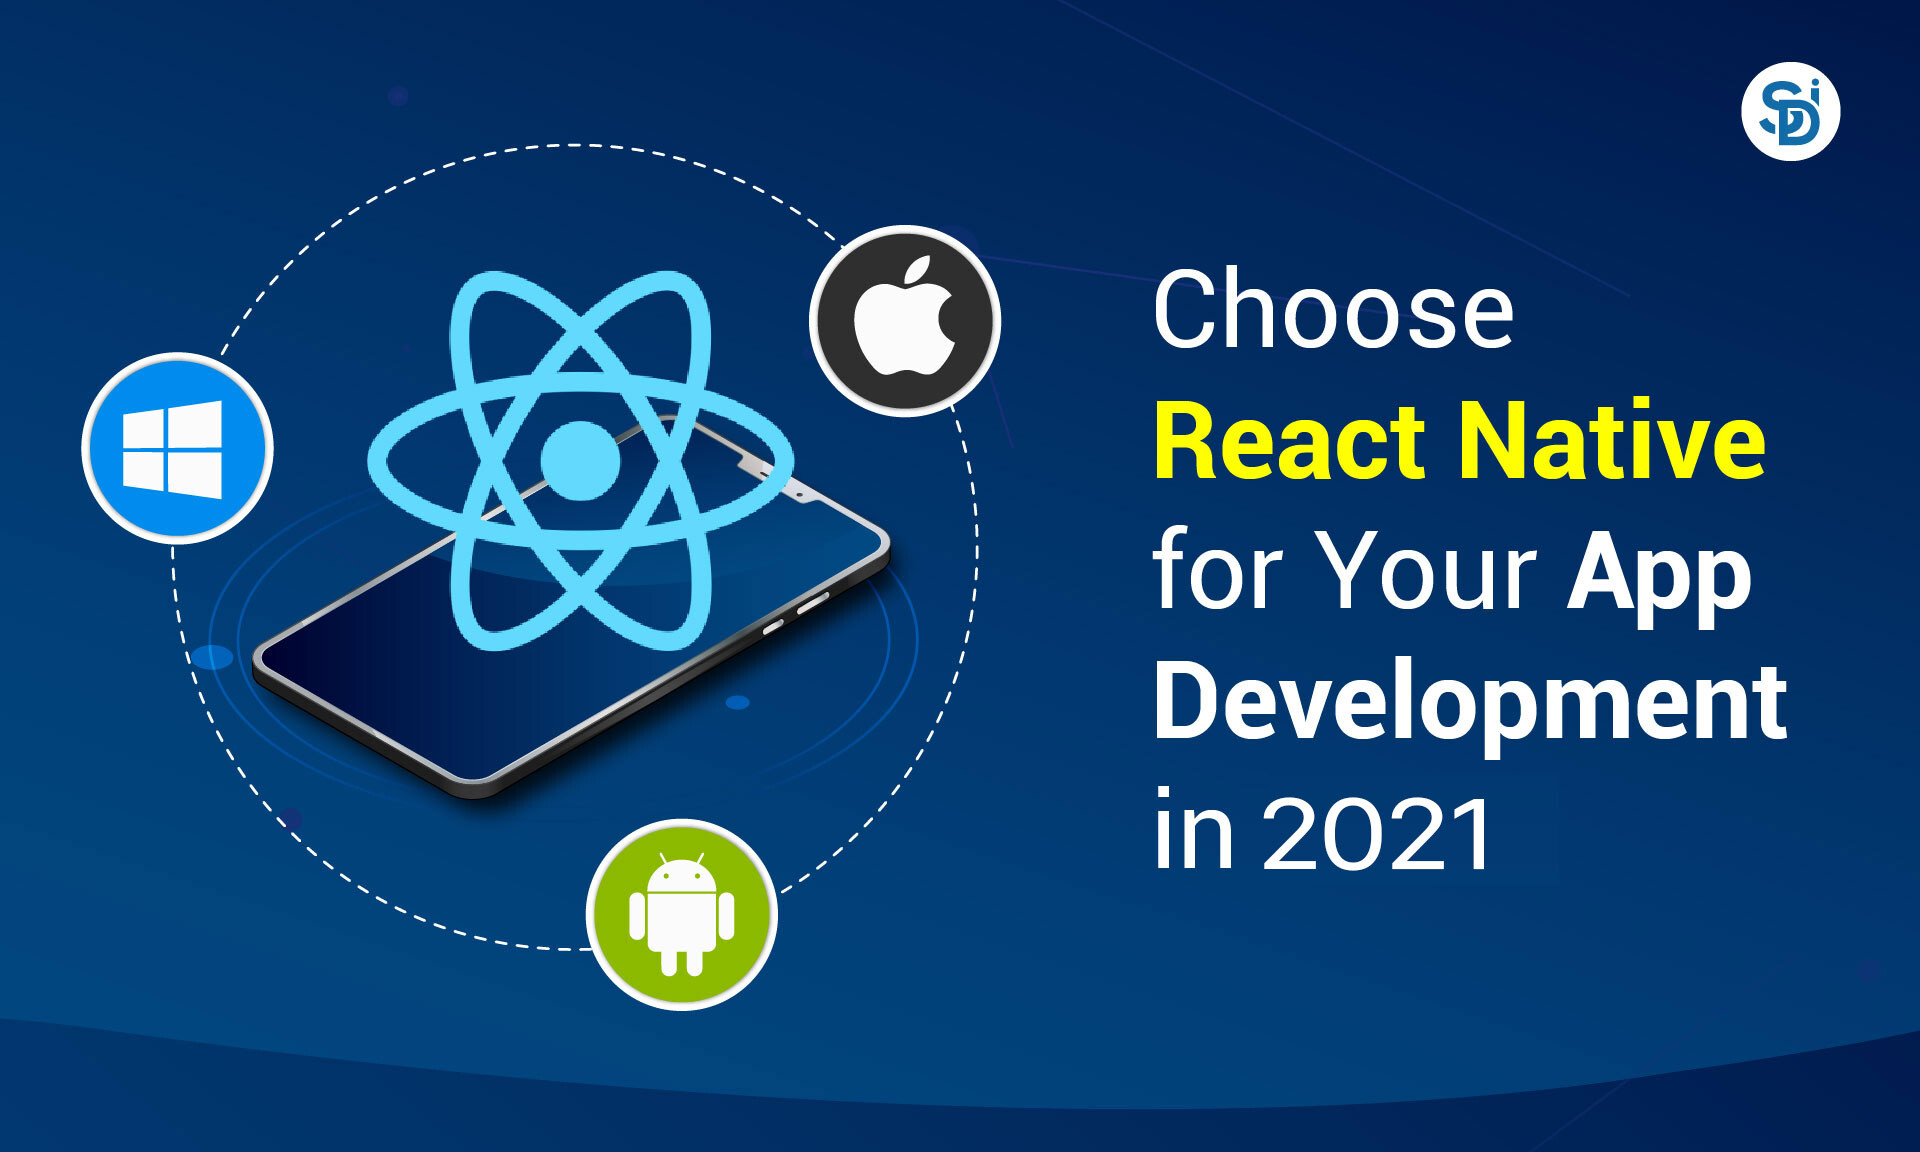 Top Reasons to Choose React Native for Your App Development in 2021